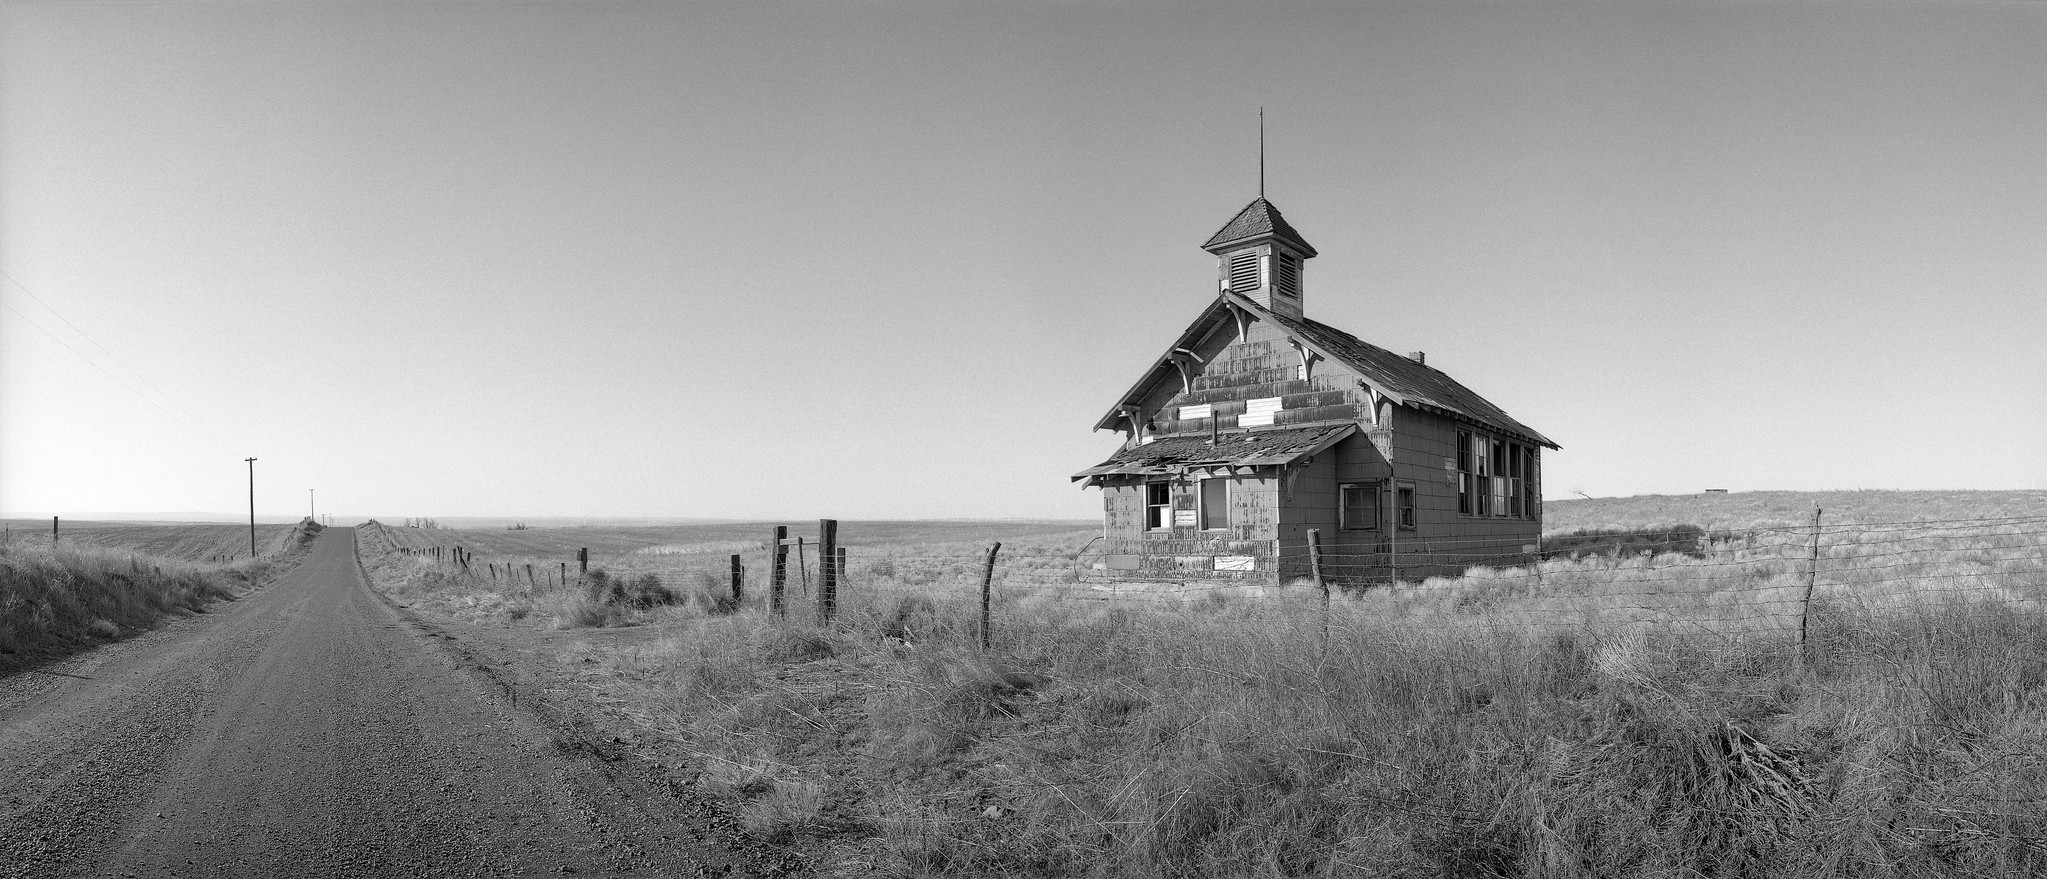 Abandoned Schoolhouse, Goodnoe Hills, Washington | by austin granger